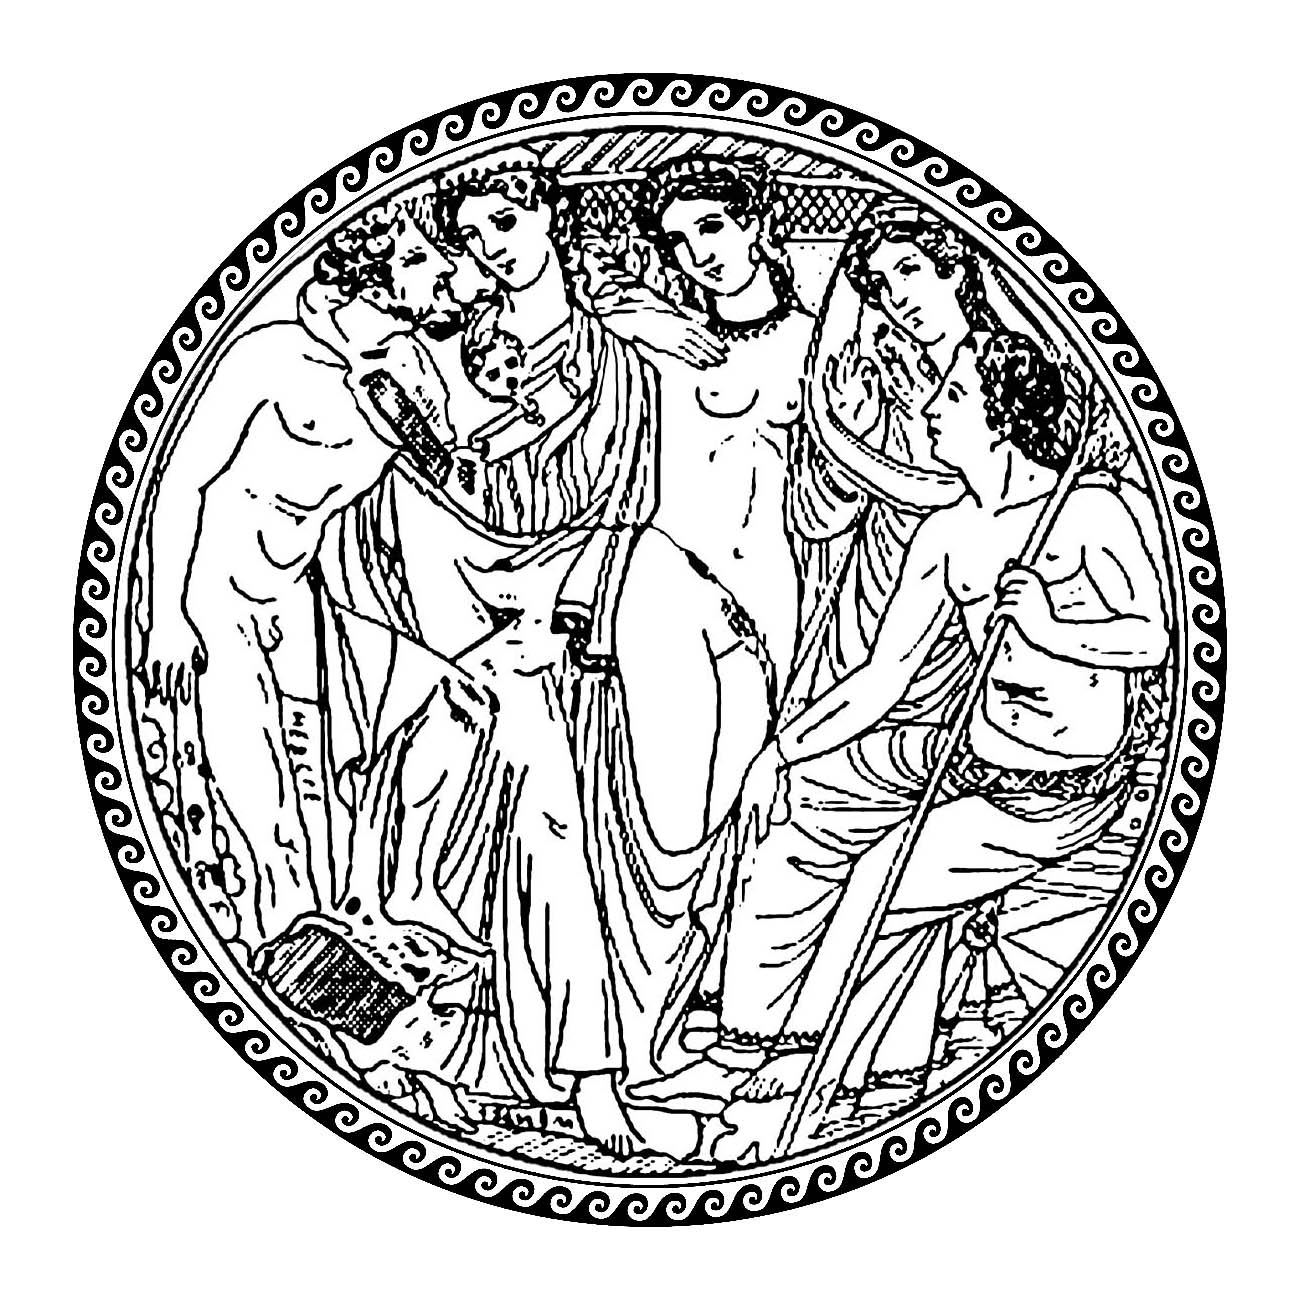 Hebe and Heracles, in a circle with traditional greek patterns - 2